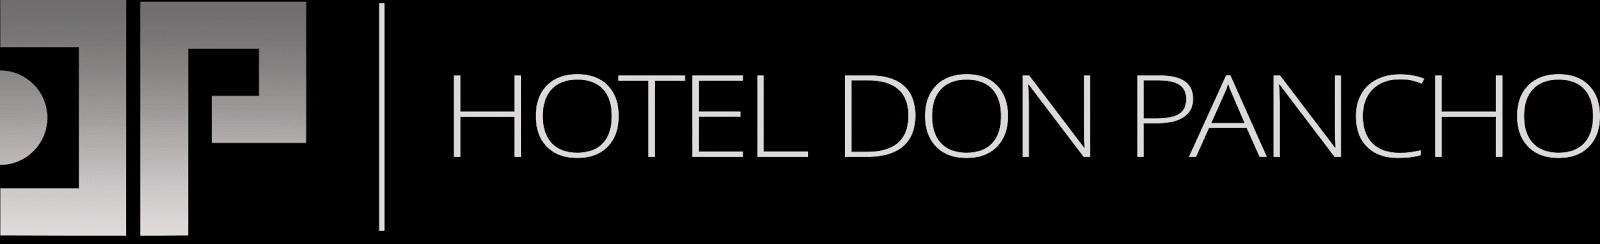 The new logo of the hotel